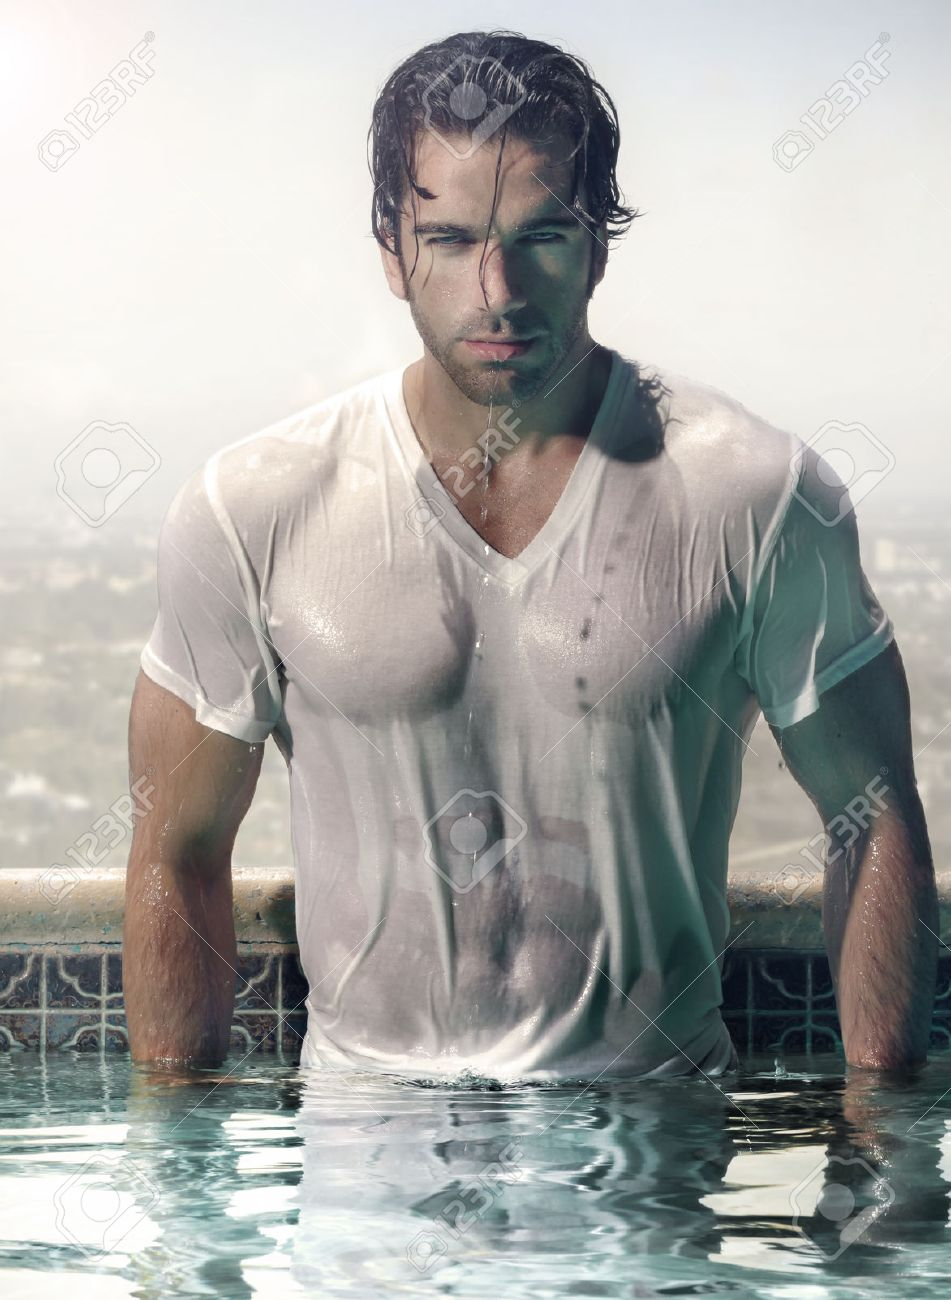 Wet male photos 14